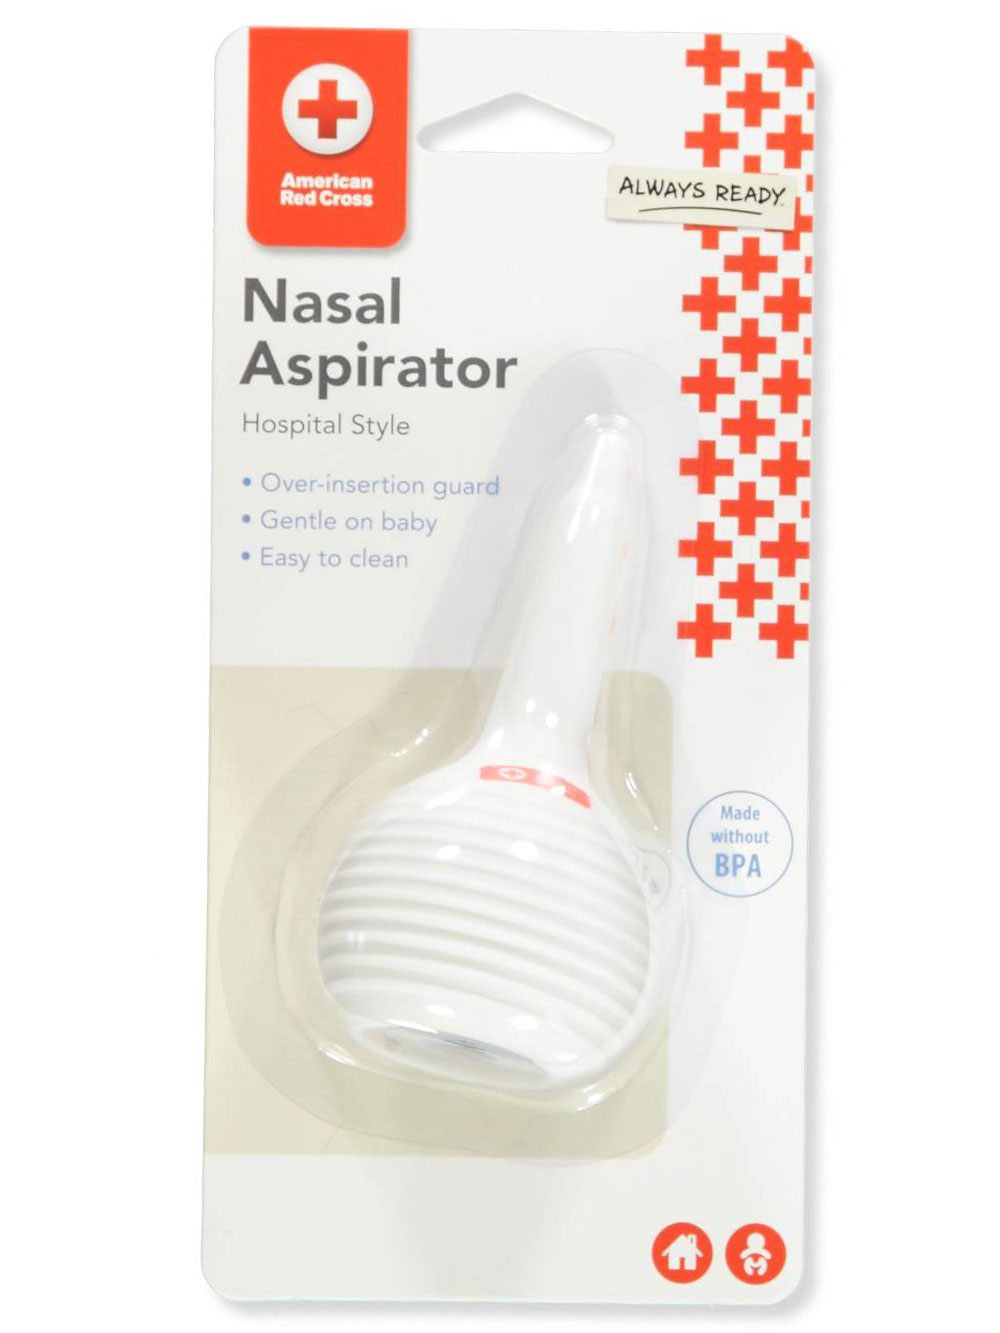 NEW Nuby Soft Tip BPA Free Nasal Aspirator Set with Attachable Ear Syringe